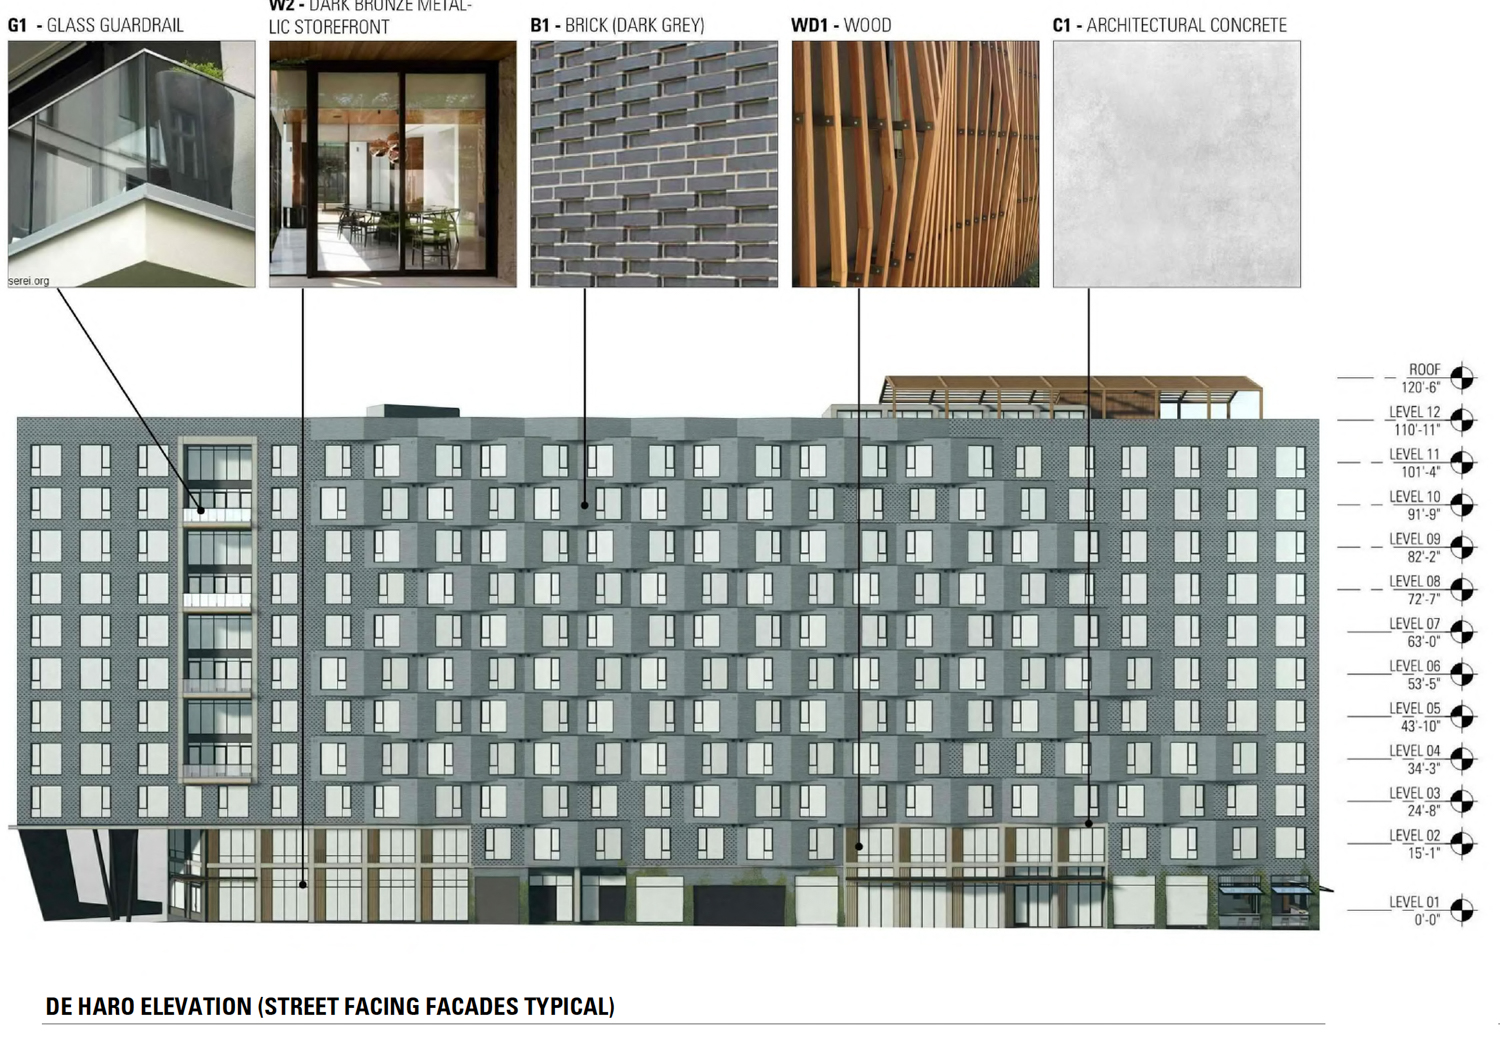 300 De Haro Street vertical facade elevation with materials listed, illustration from BAR Architects